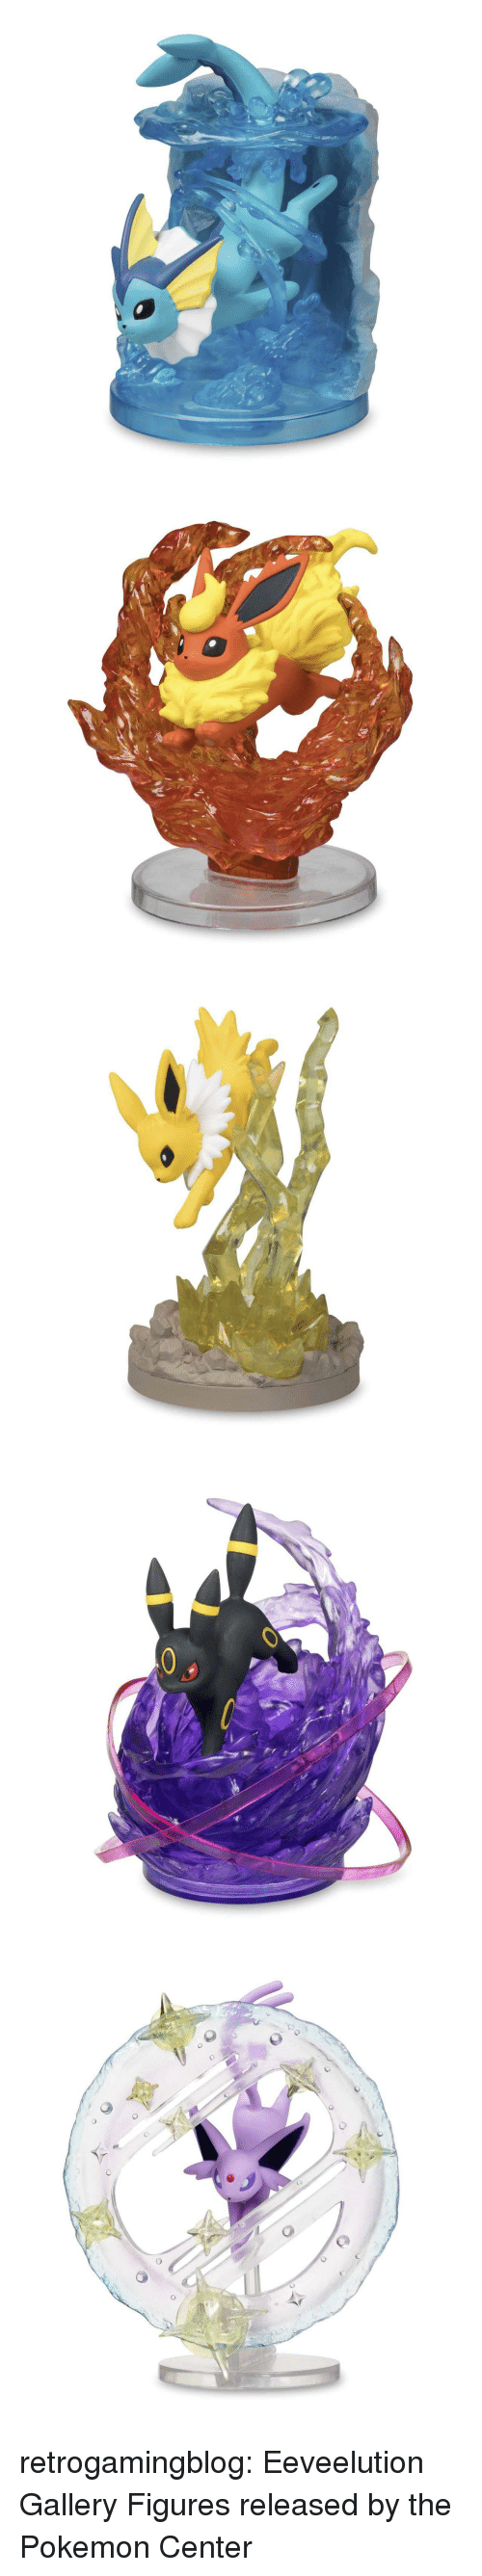 the pokemon: retrogamingblog:  Eeveelution Gallery Figures released by the Pokemon Center